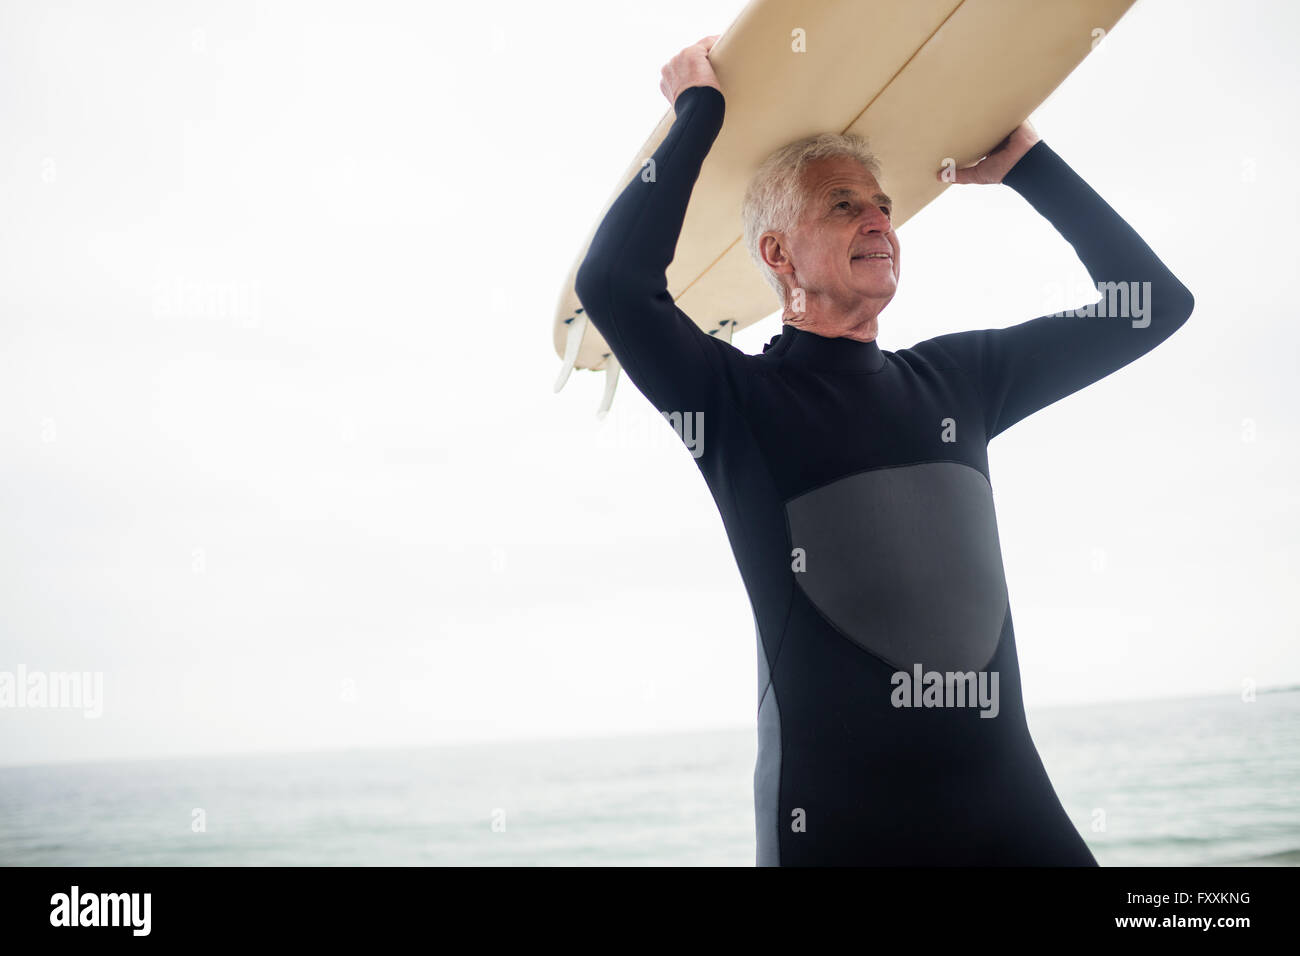 Senior man holding a surfboard over his head Stock Photo